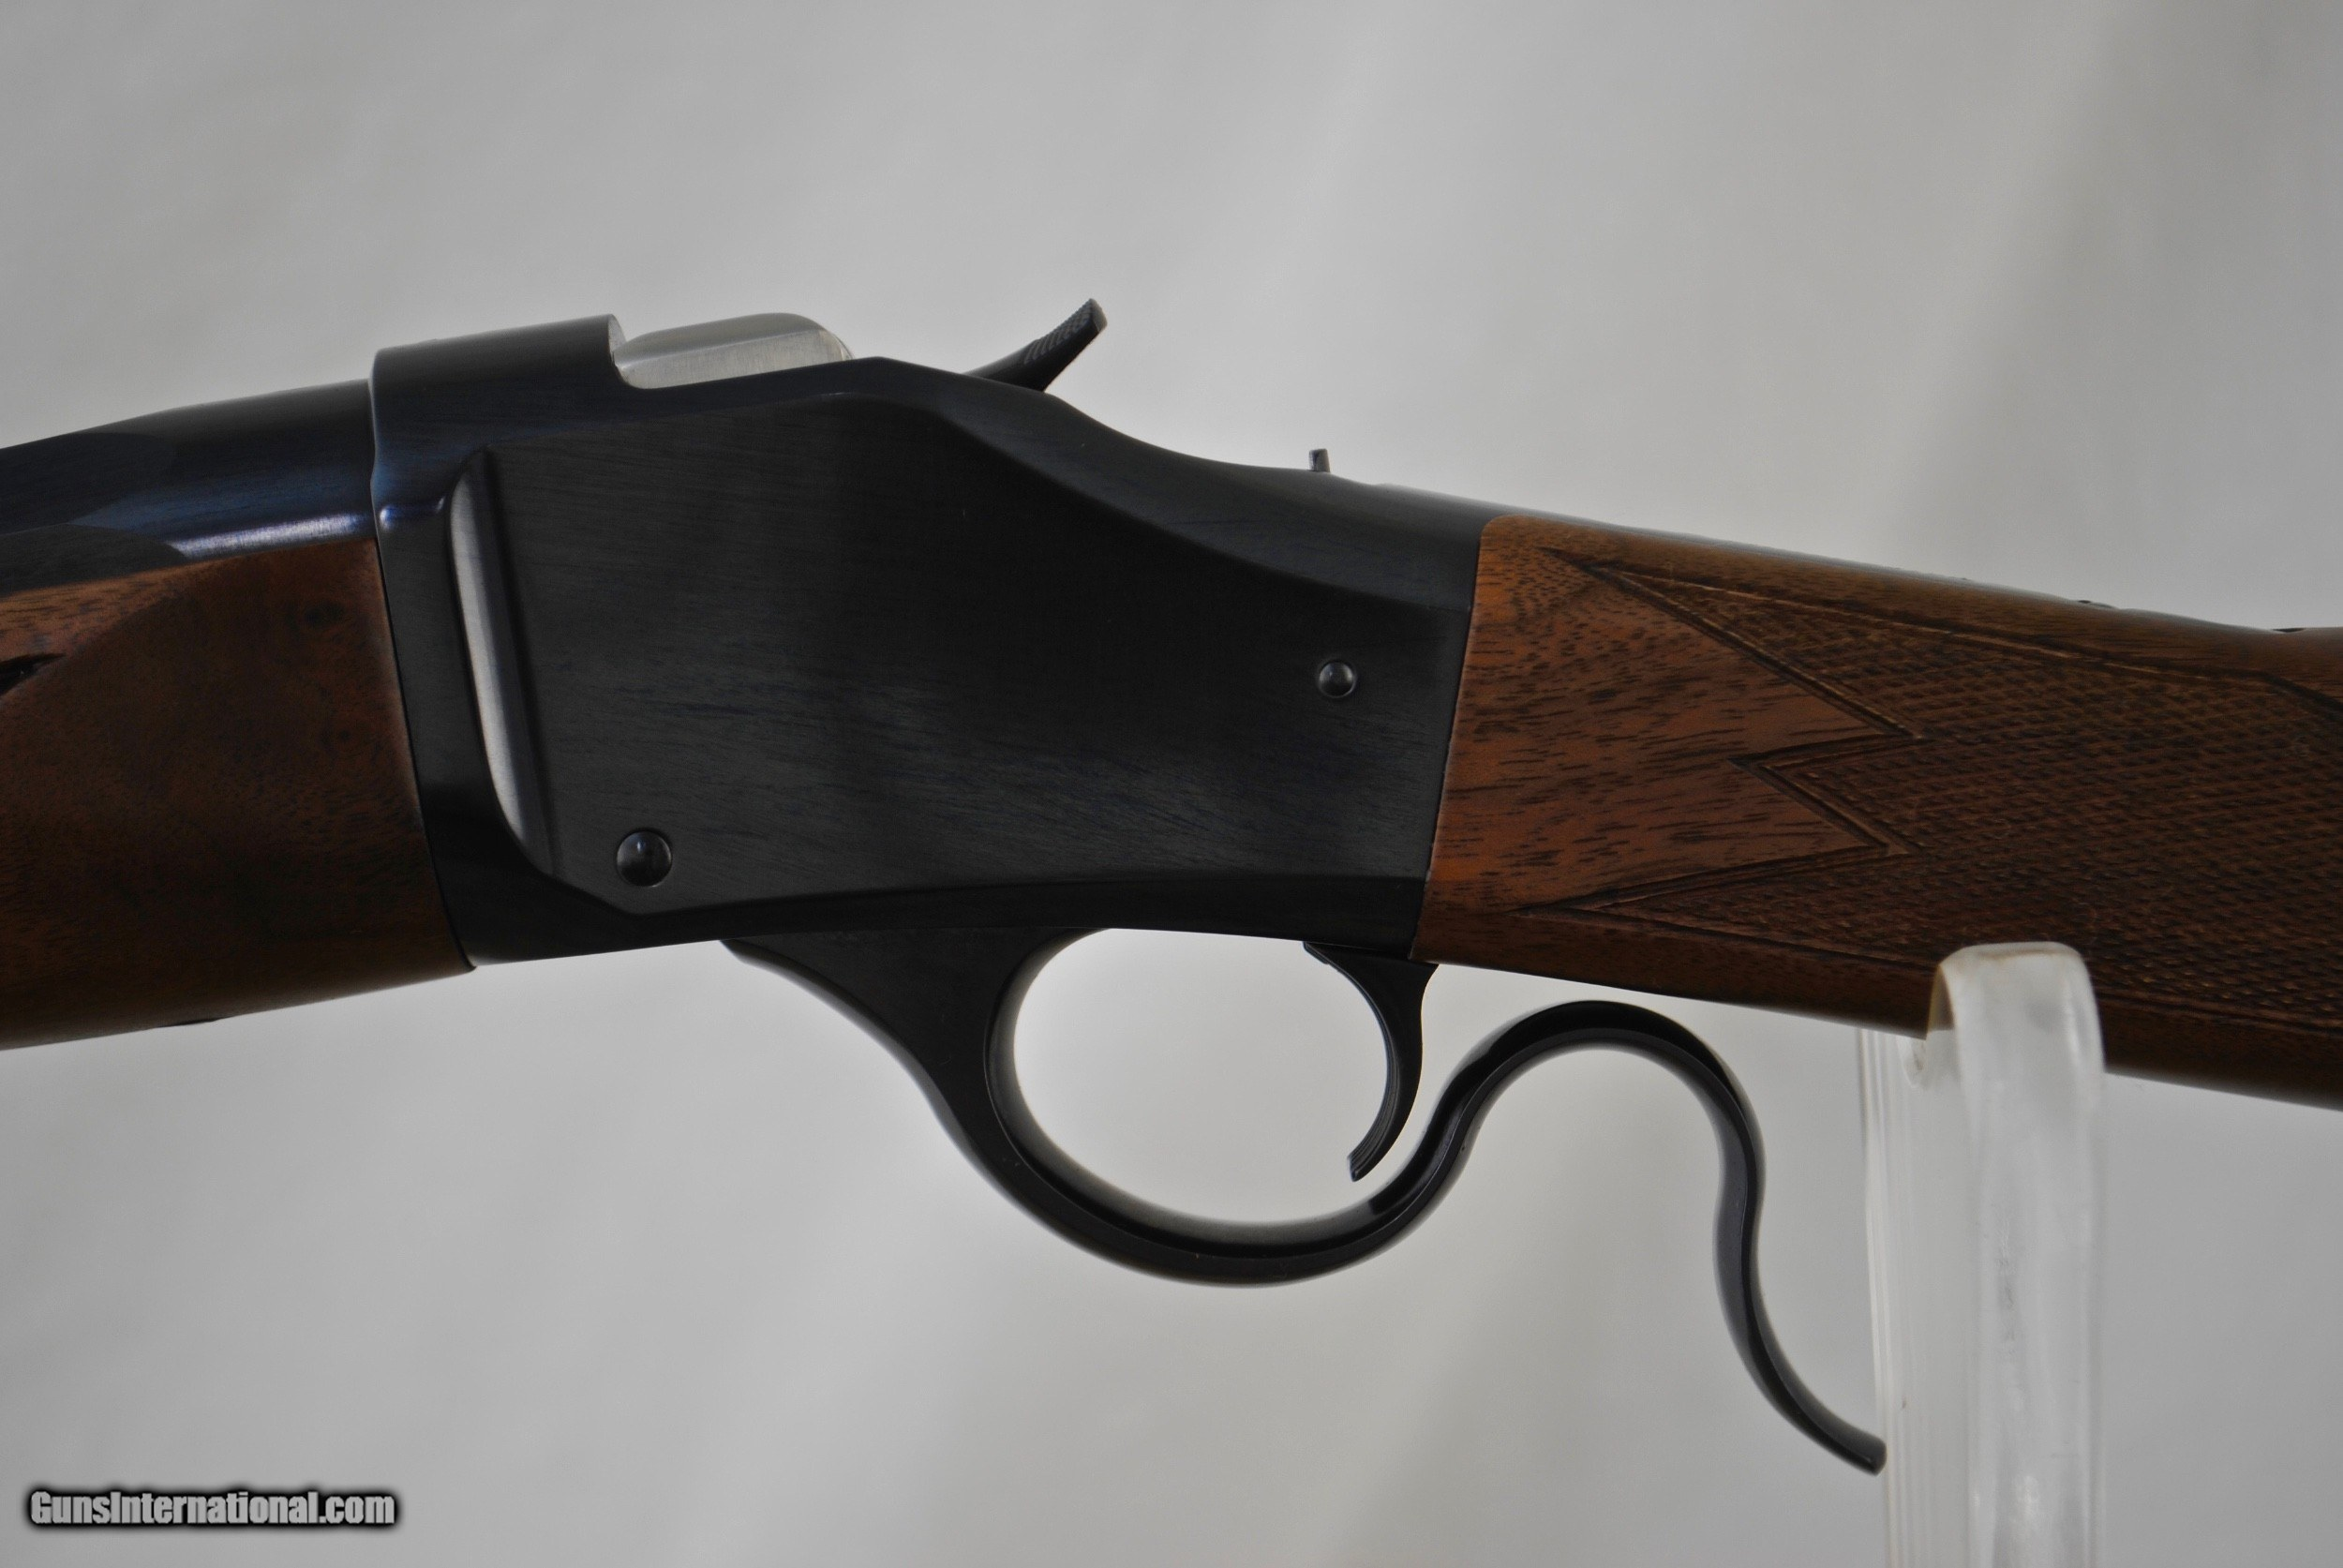 WINCHESTER 1885 HUNTER IN 6 5 CREEDMORE - CUSTOM SKINNER PEEP SIGHT